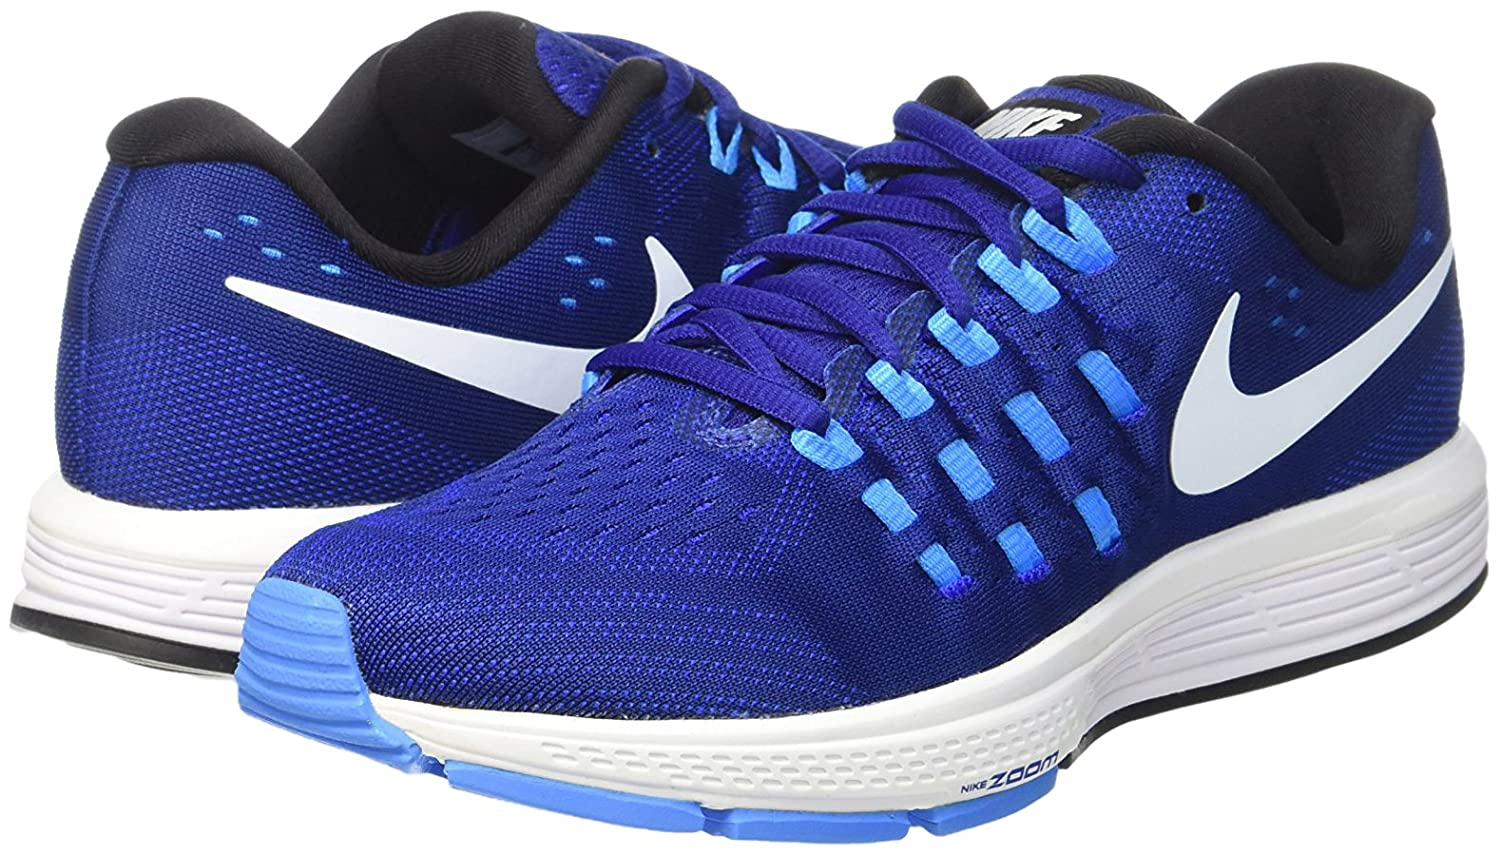 quality design b0dc0 189d8 Amazon.com   Nike WMNS AIR Zoom Vomero 11 Womens Road Running Shoes  818100-400 Size 5.5 B US   Road Running